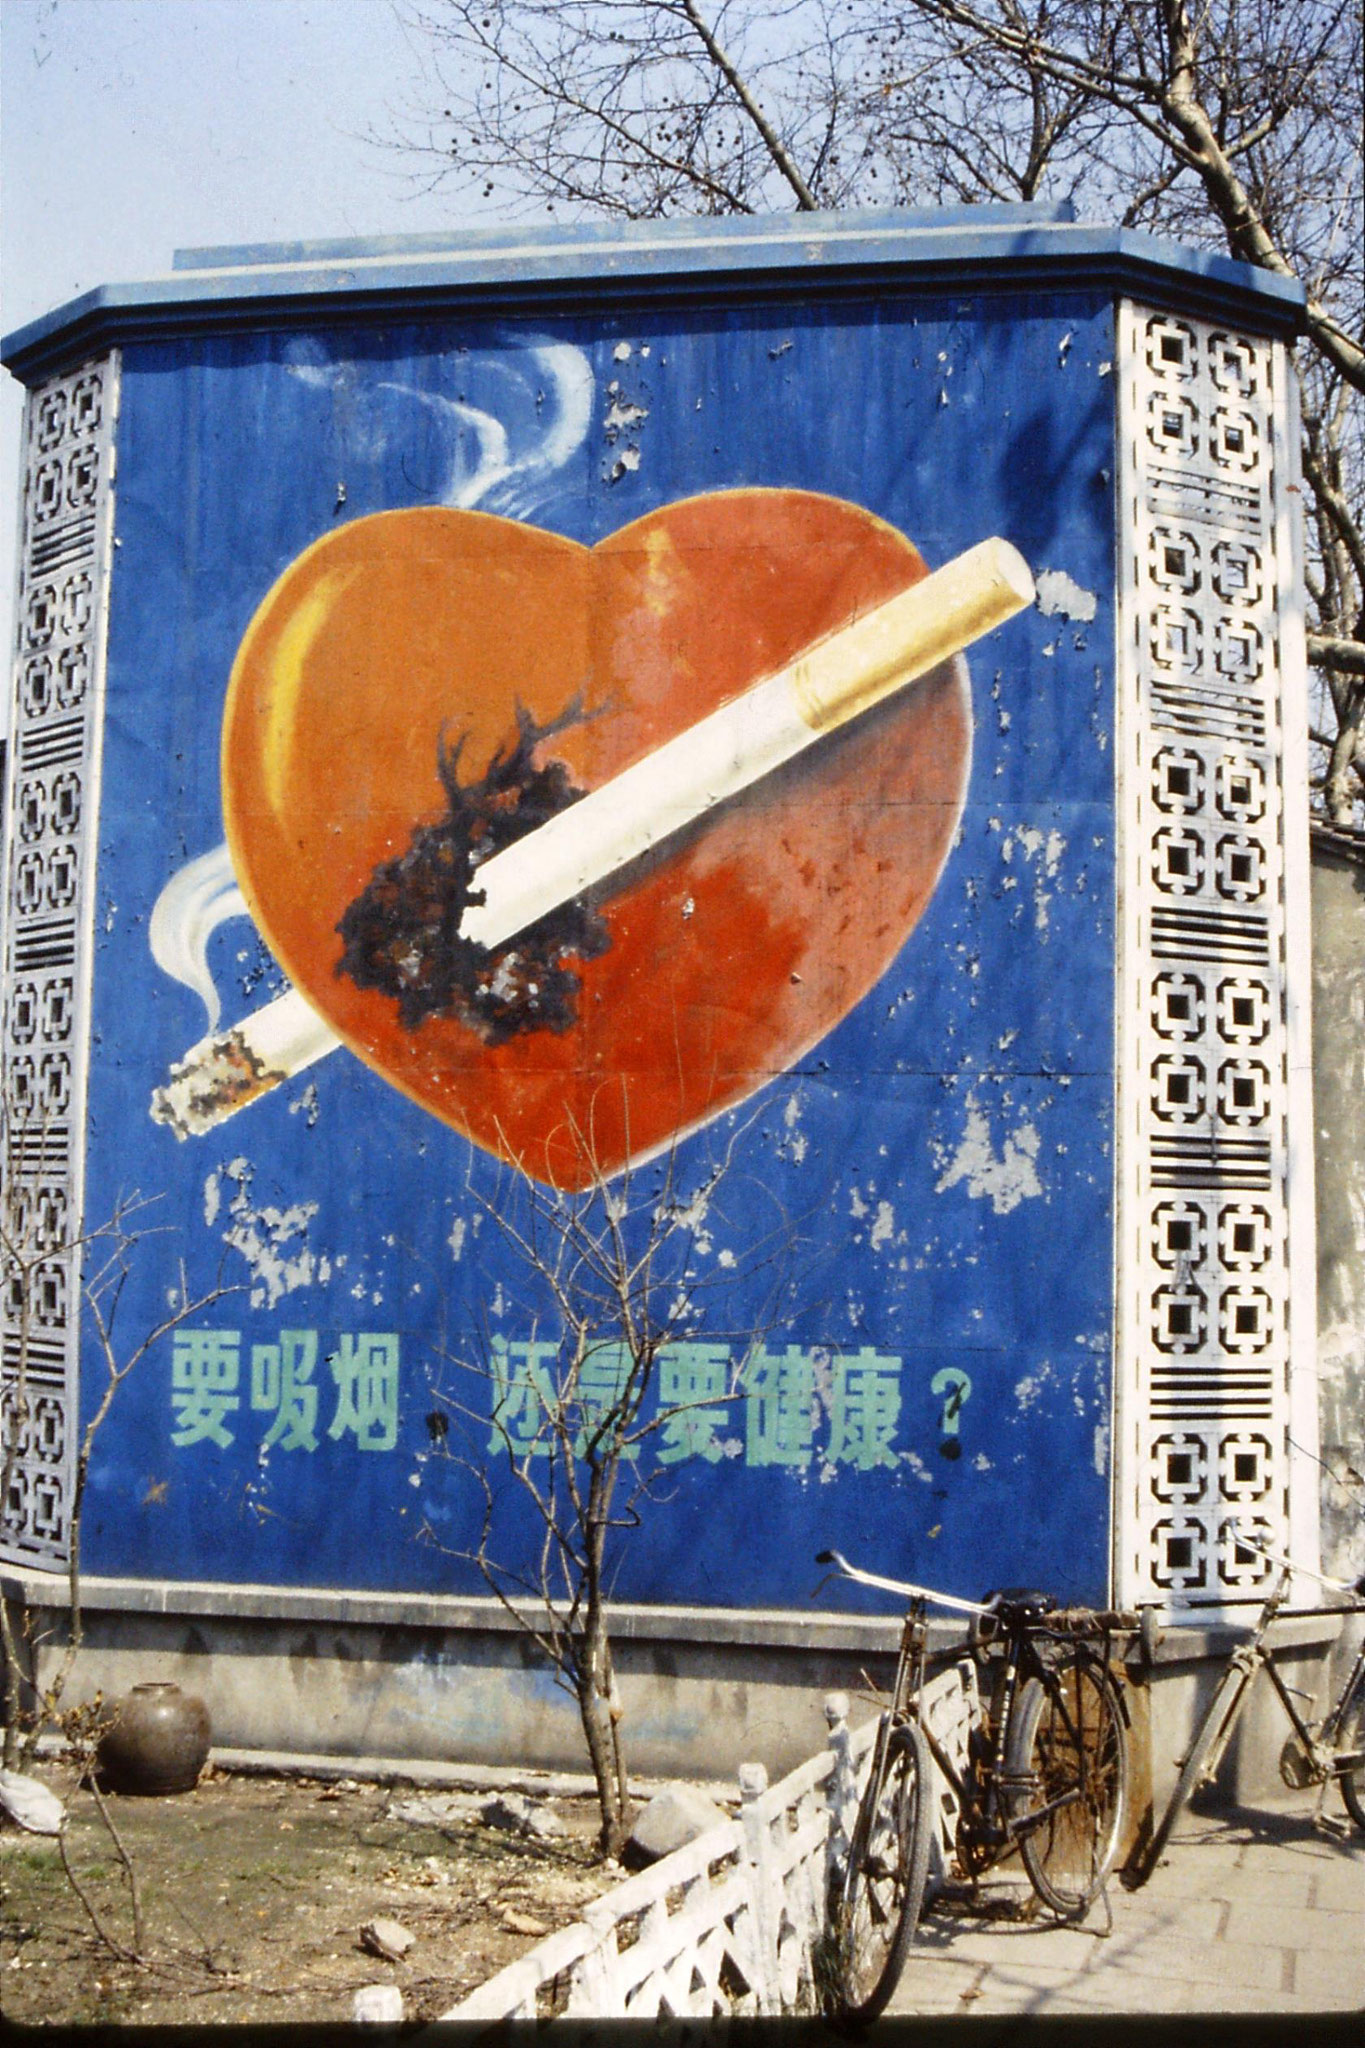 21/3/1989: 29: Suzhou Anti-Smoking poster